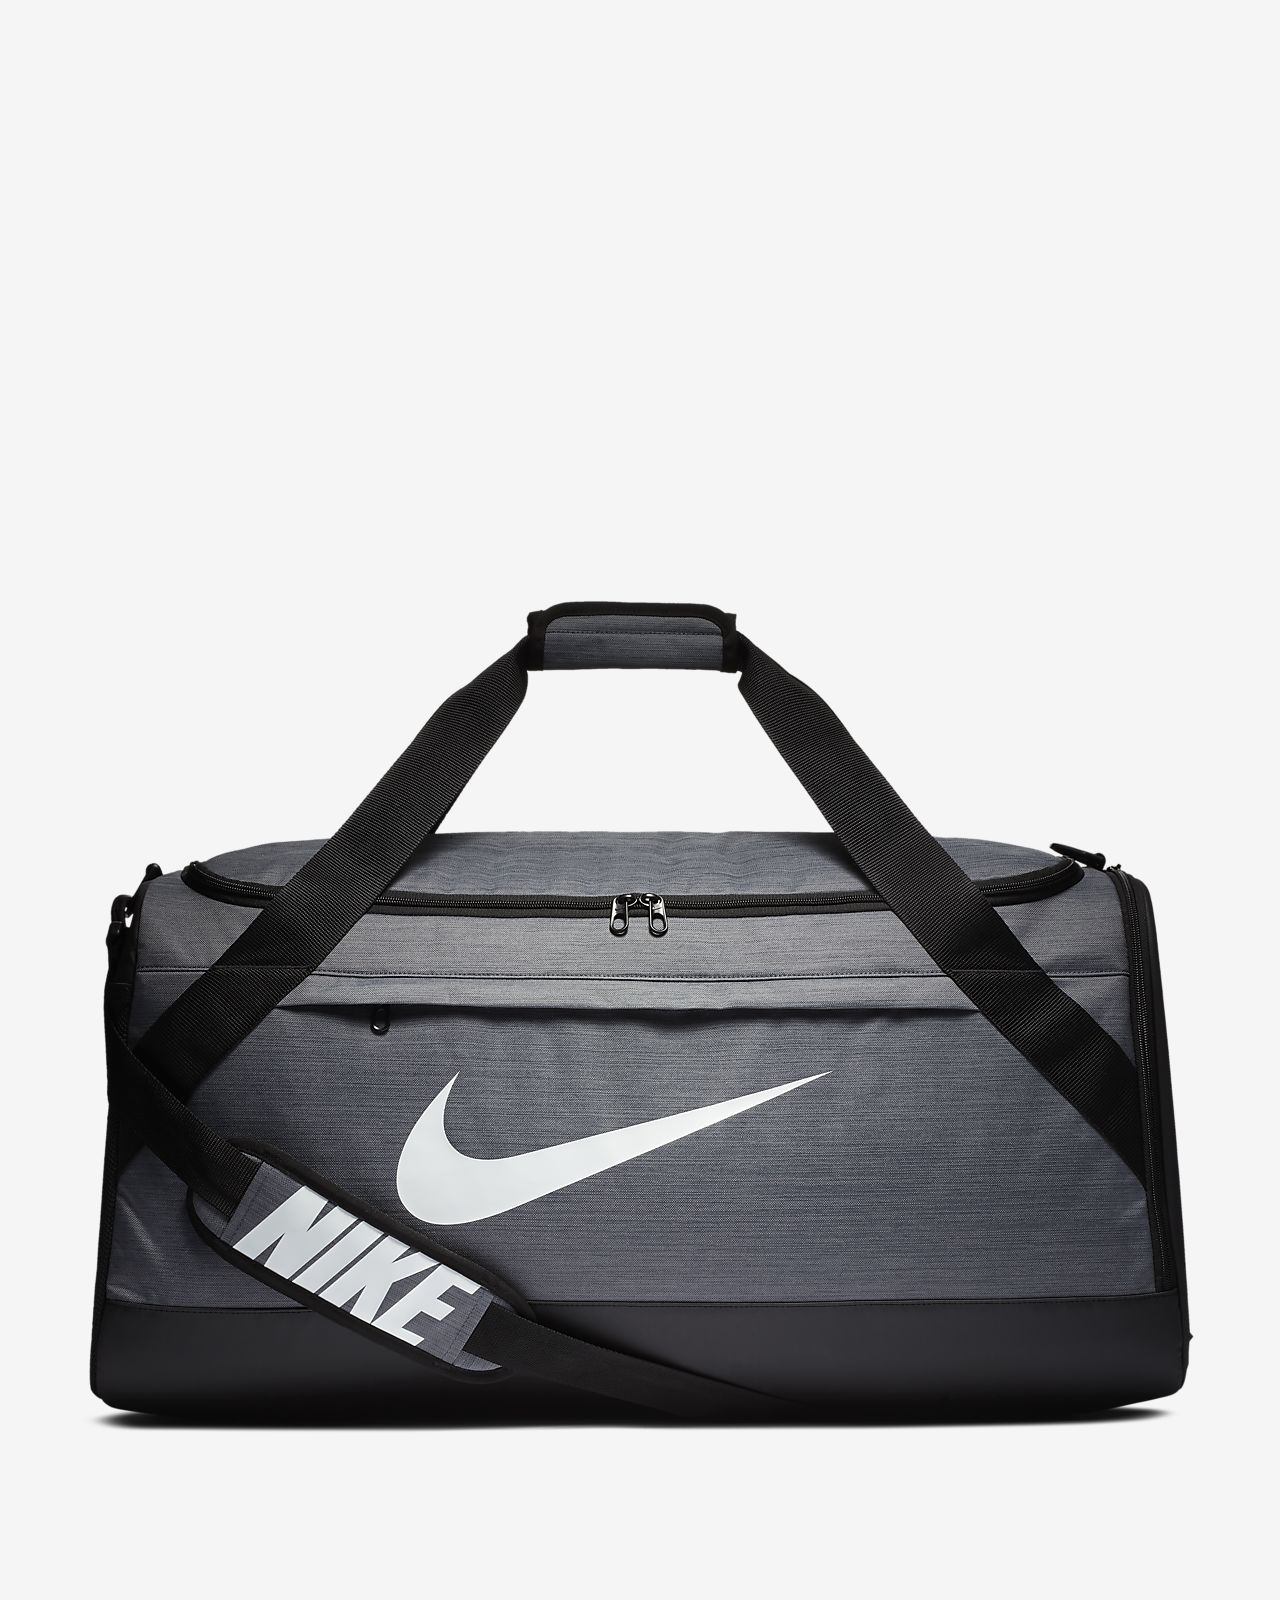 55be312757fa Nike Brasilia Training Duffel Bag (Large). Nike.com